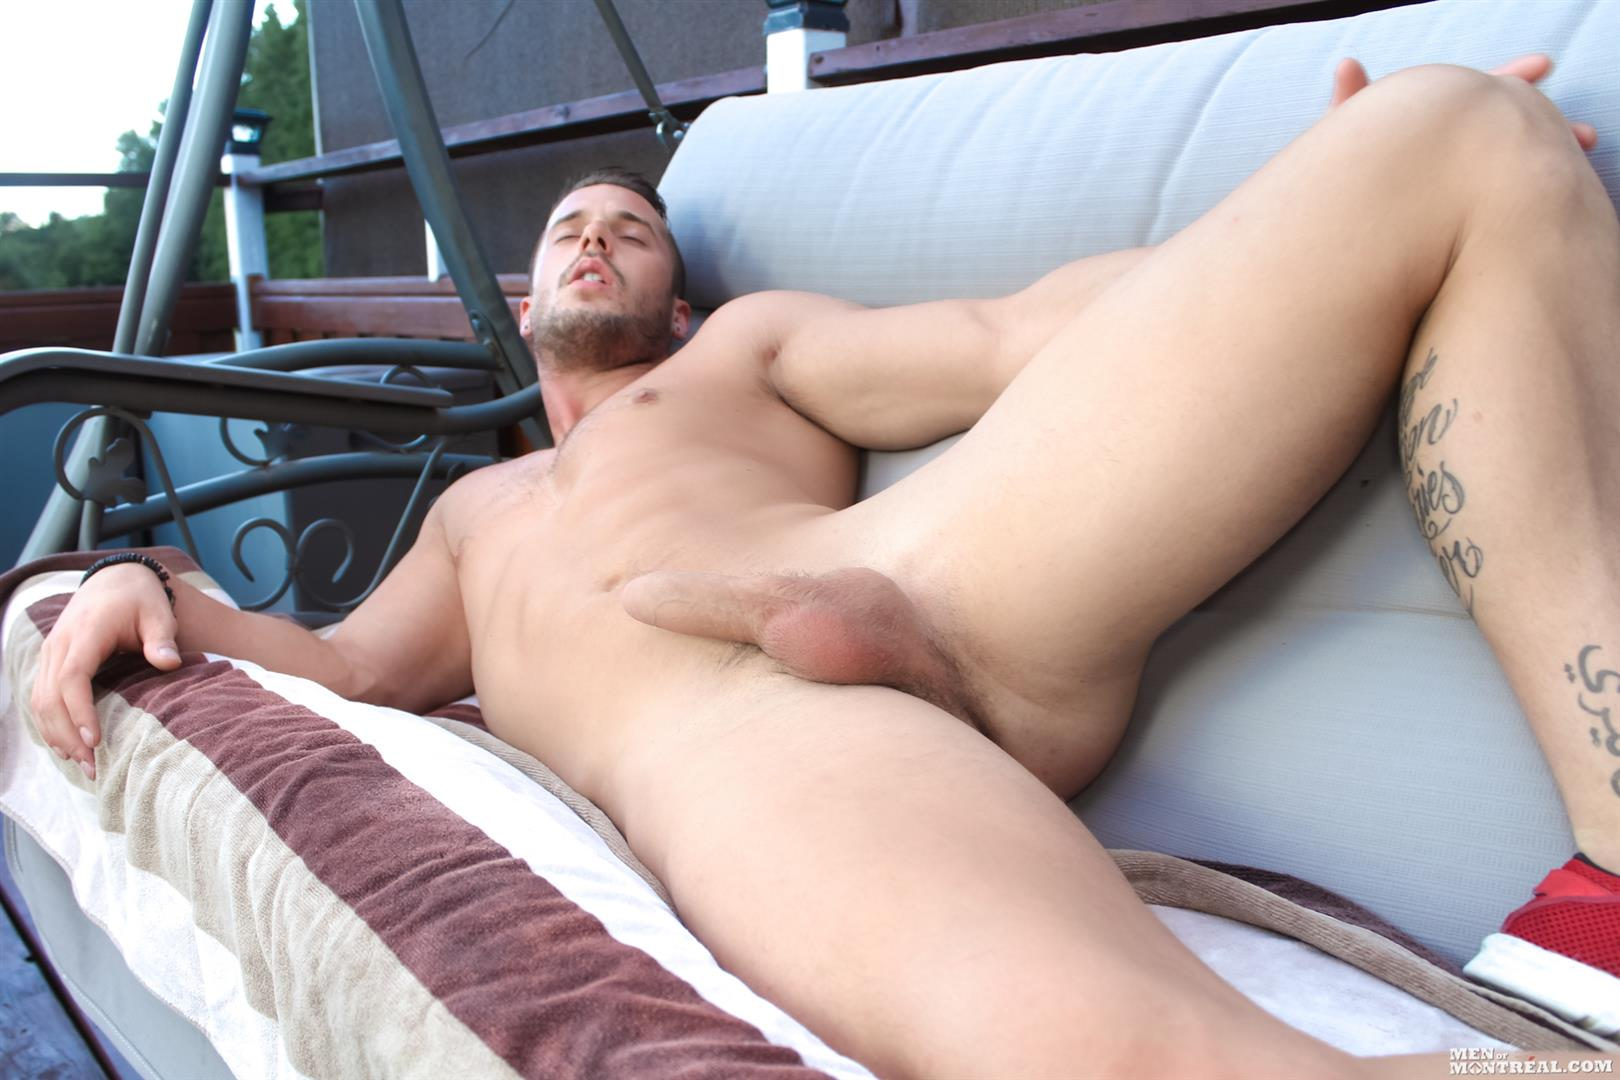 Men-of-Montreal-Nathan-Fox-Canadian-Hunk-Jerking-His-Big-Uncut-Cock-Amateur-Gay-Porn-07 Canadian Hunk Nathan Fox Jerking Off His Big Uncut Cock